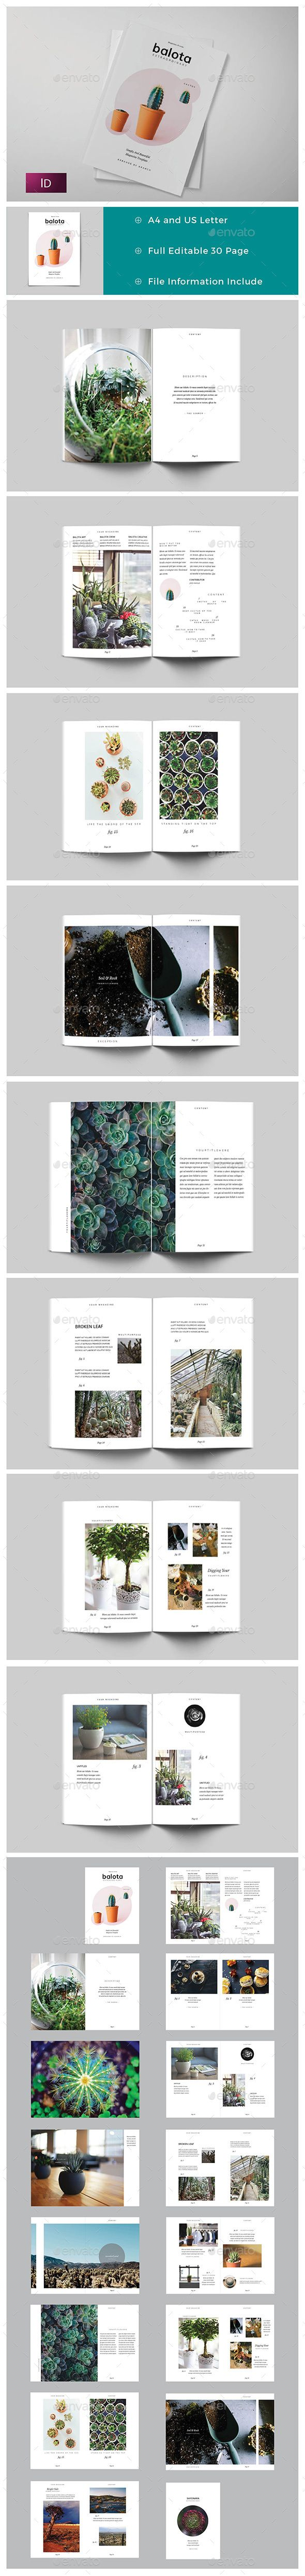 Balota Magazine / Portfolio Template 	InDesign INDD. Download here: http://graphicriver.net/item/balota-magazine-portfolio/15802680?ref=ksioks